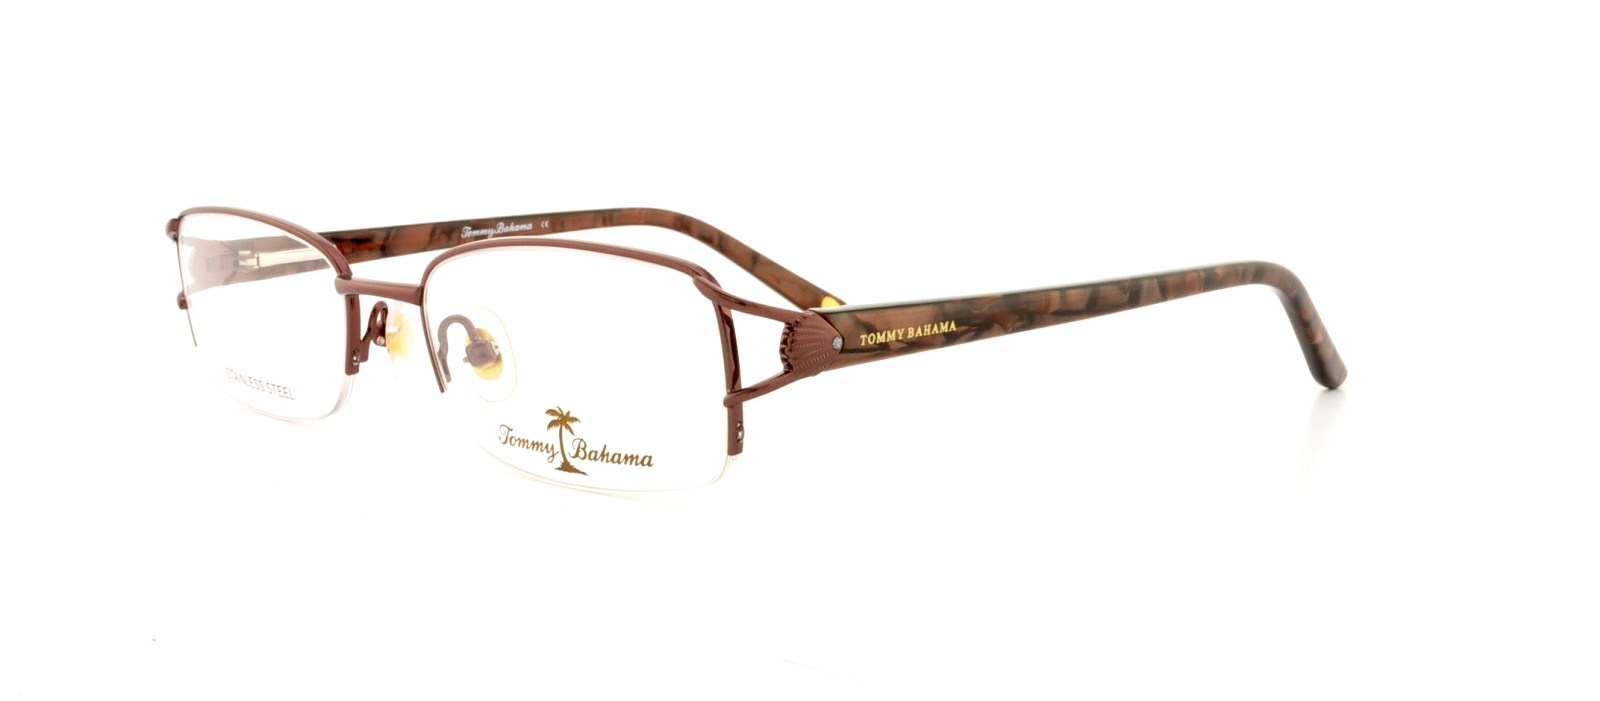 TOMMY BAHAMA Eyeglasses TB5011 001 Brown 48MM - Walmart.com